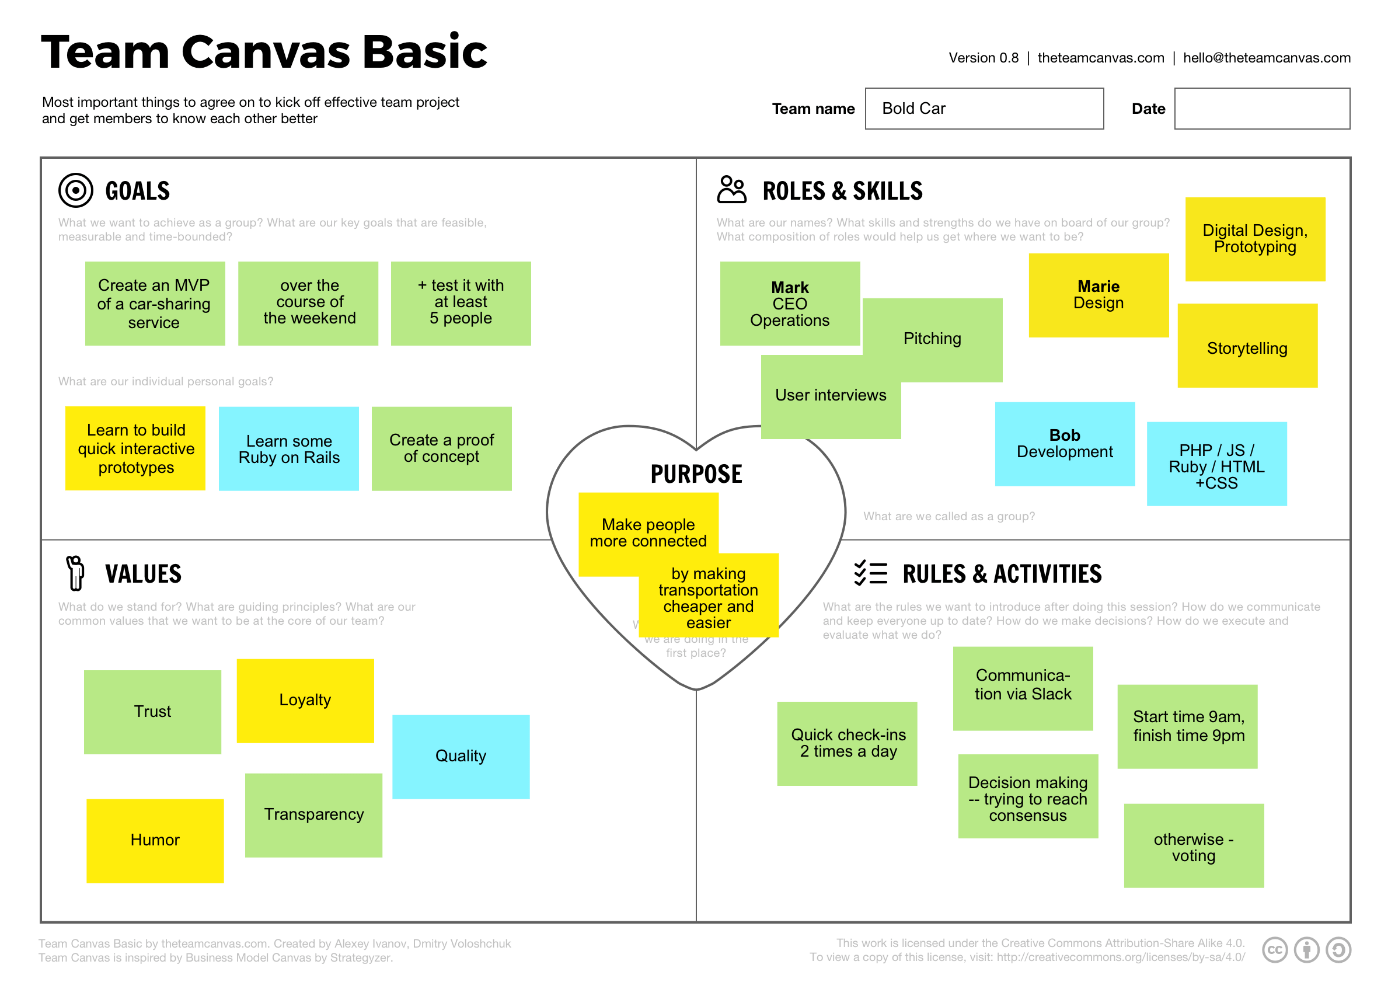 http://theteamcanvas.com/assets/team-canvas-basic-example.png